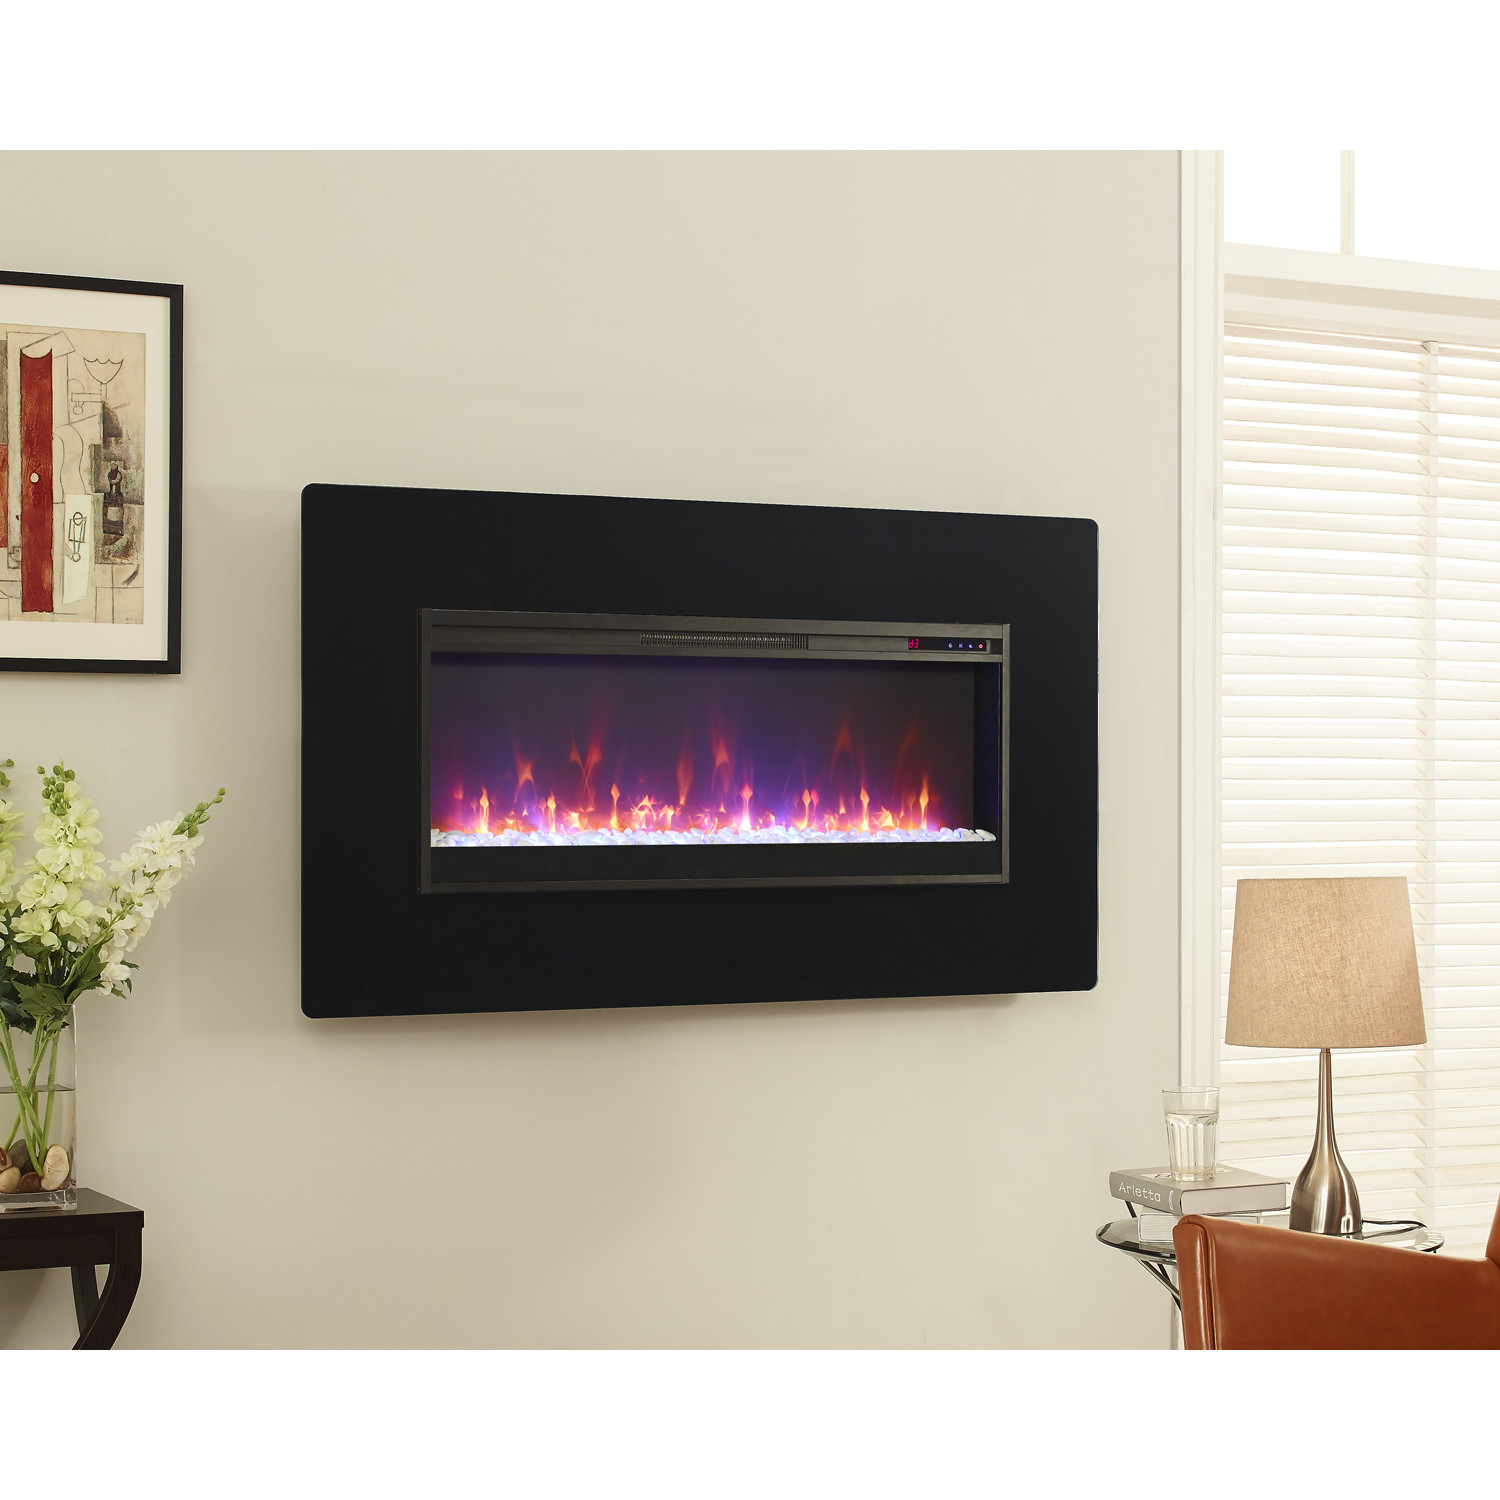 Breathtaking muskoka electric fireplace for home furniture with muskoka electric fireplace insert